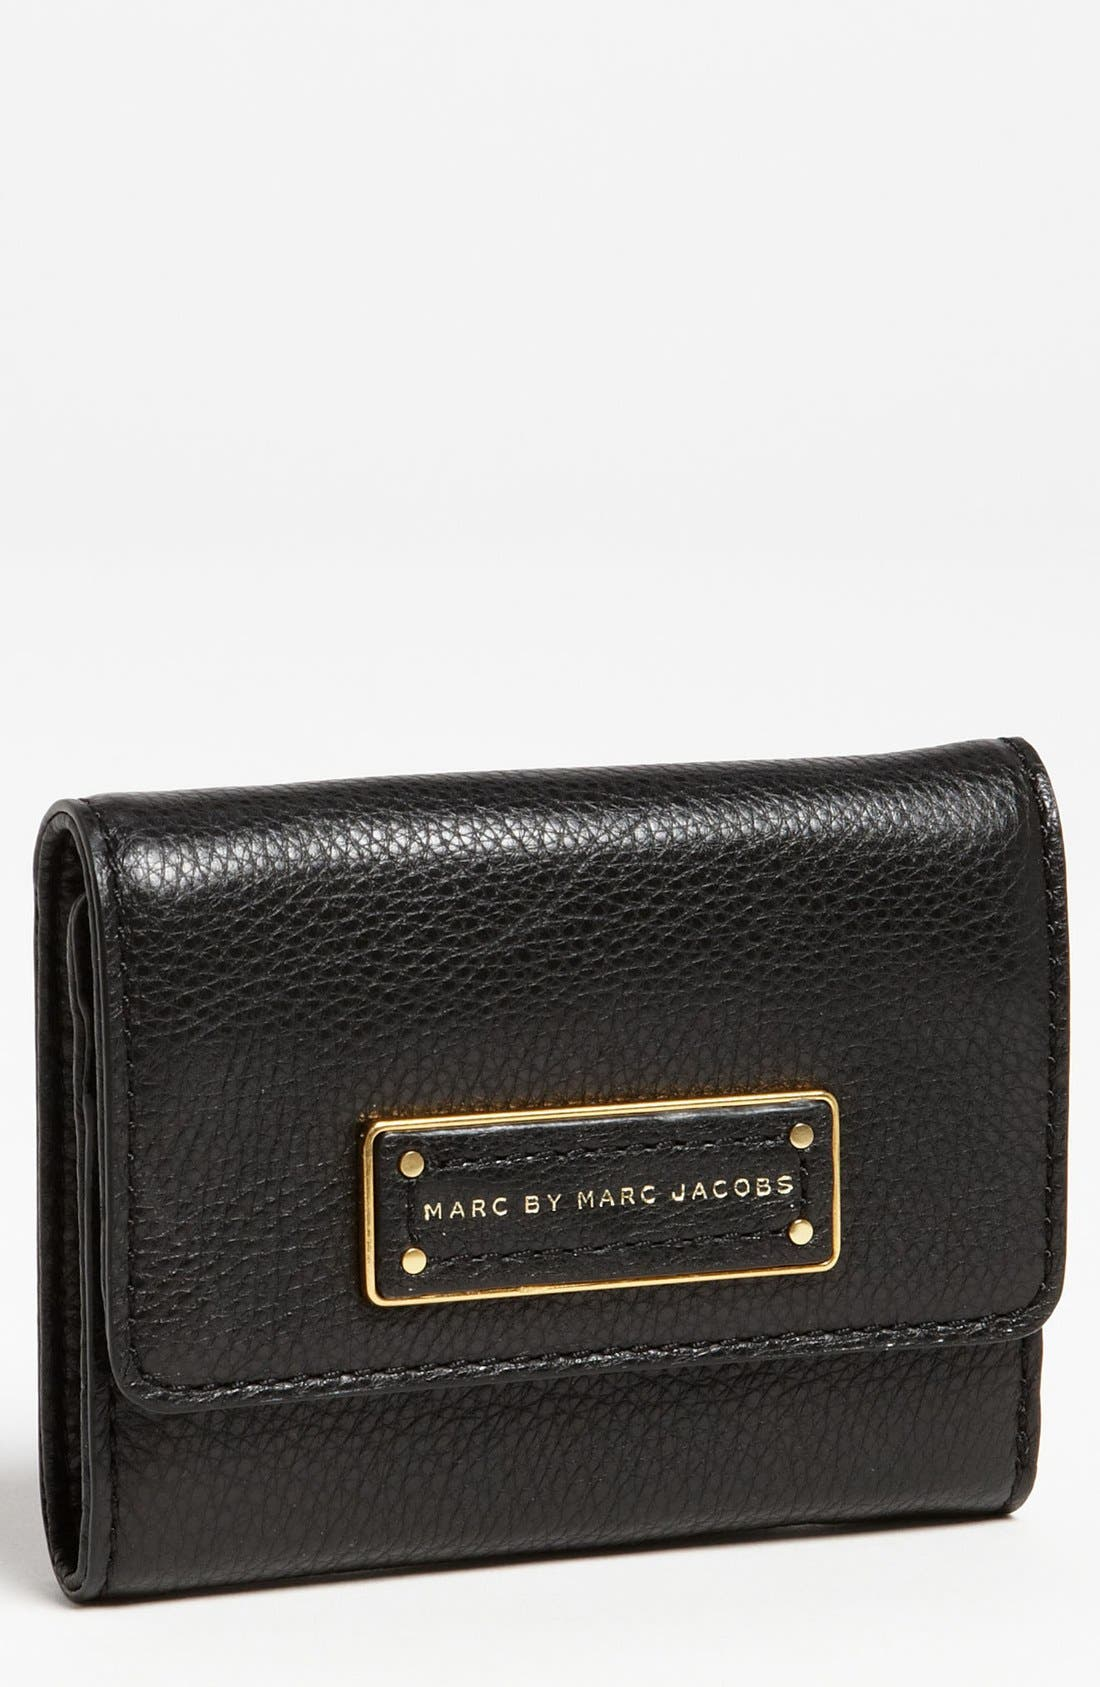 MARC BY MARC JACOBS 'Too Hot to Handle' Billfold Wallet,                             Main thumbnail 1, color,                             001